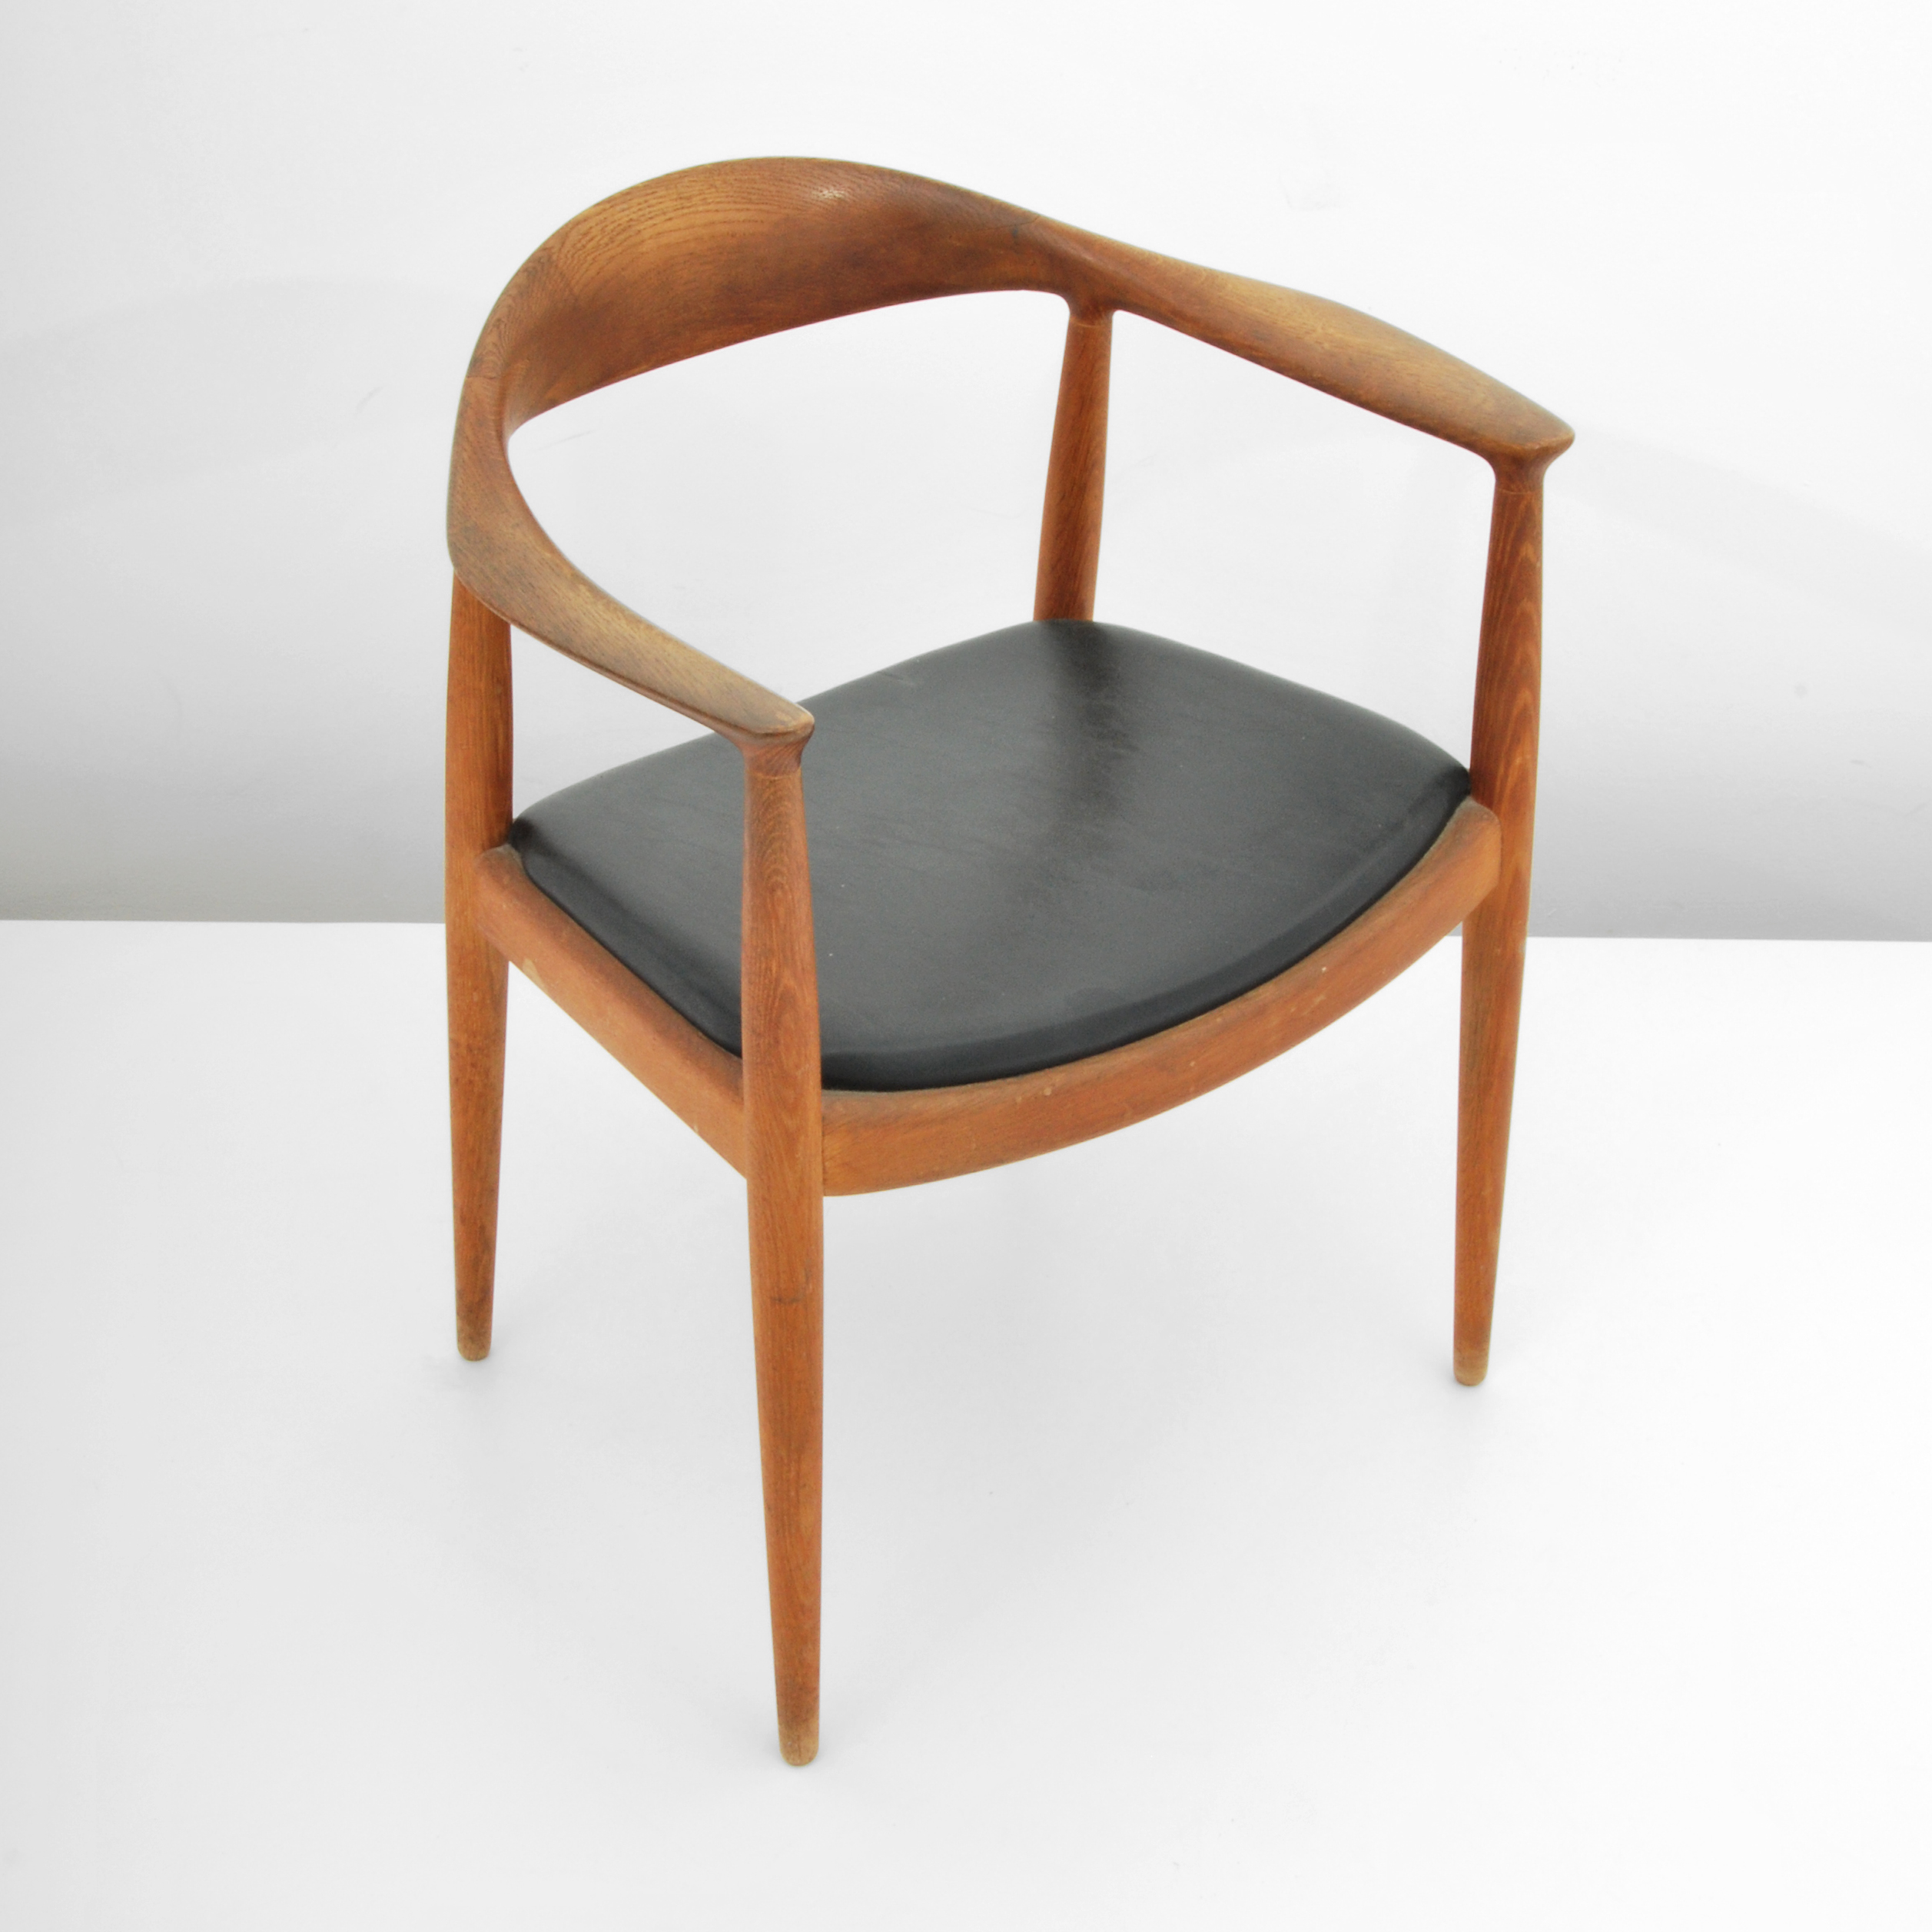 Famous Chair Danish Designer Hans Wegner Made Chair An Art Form